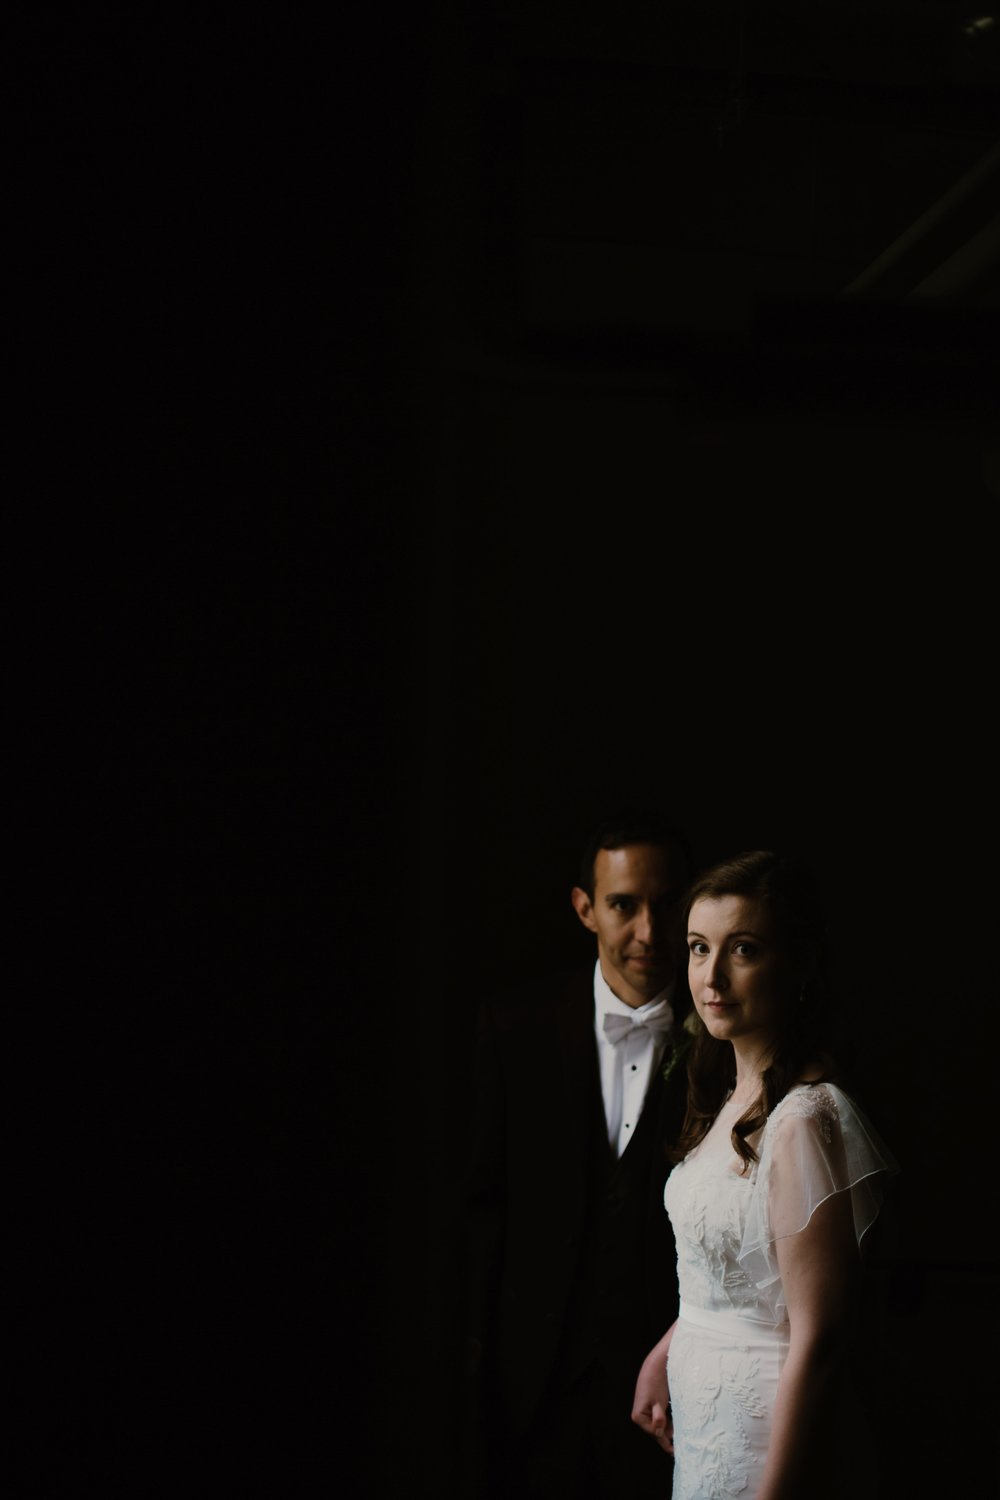 AtlantaWeddingPhotographer_042.JPG